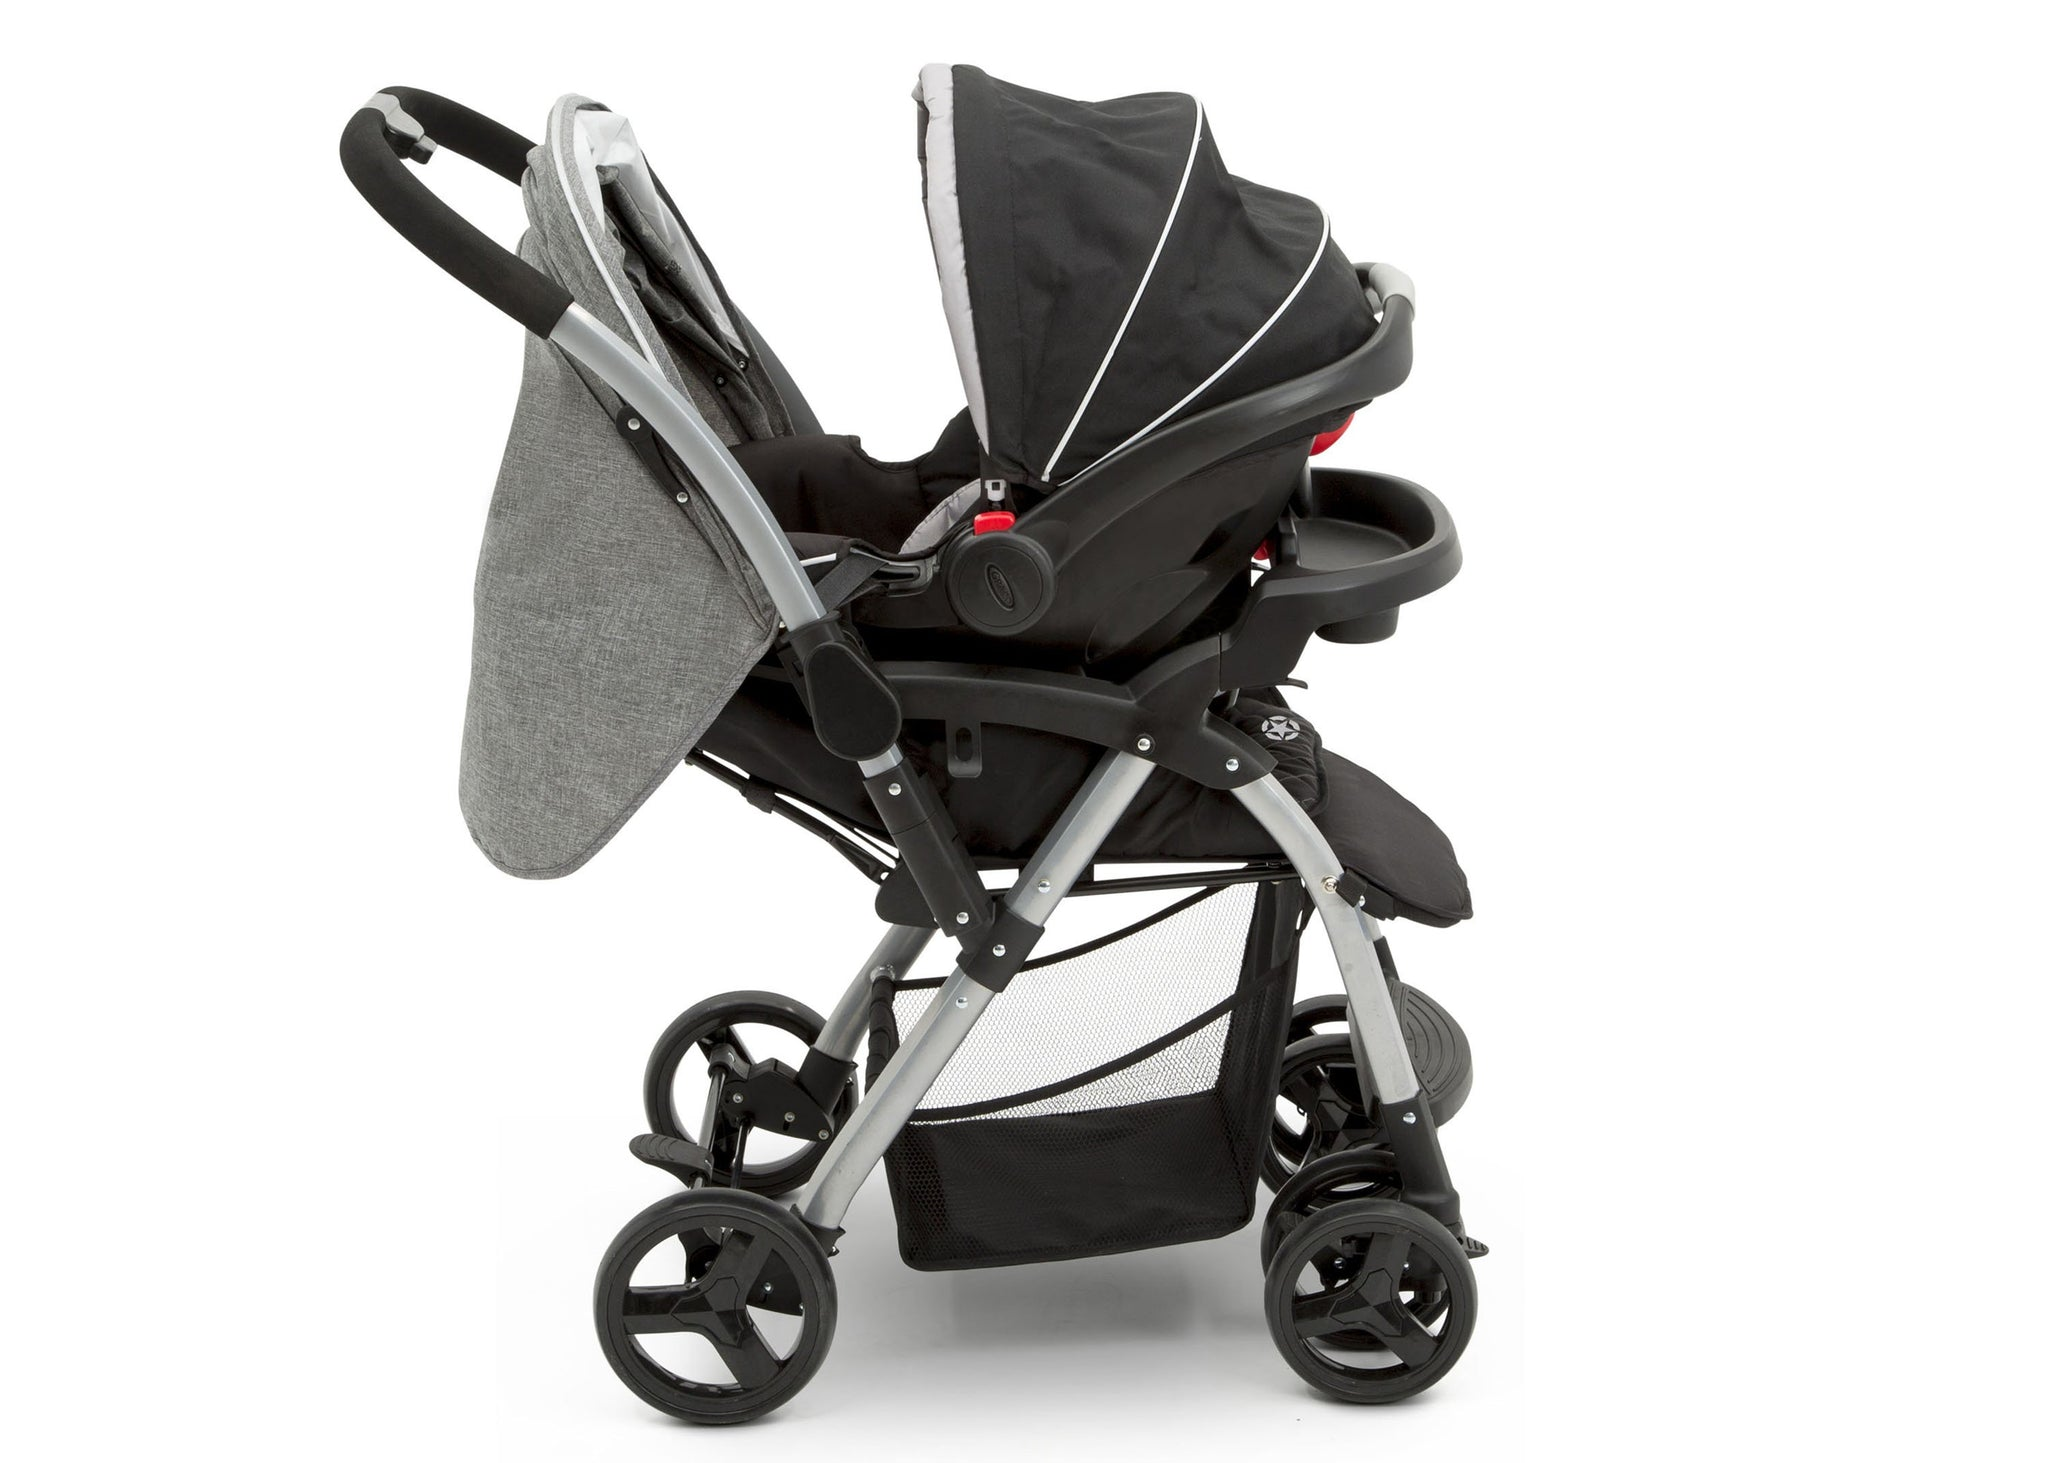 Jeep Unlimited Reversible Handle Stroller by Delta Children, Grey Tweed (2012), Switch from parent-facing to forward-facing